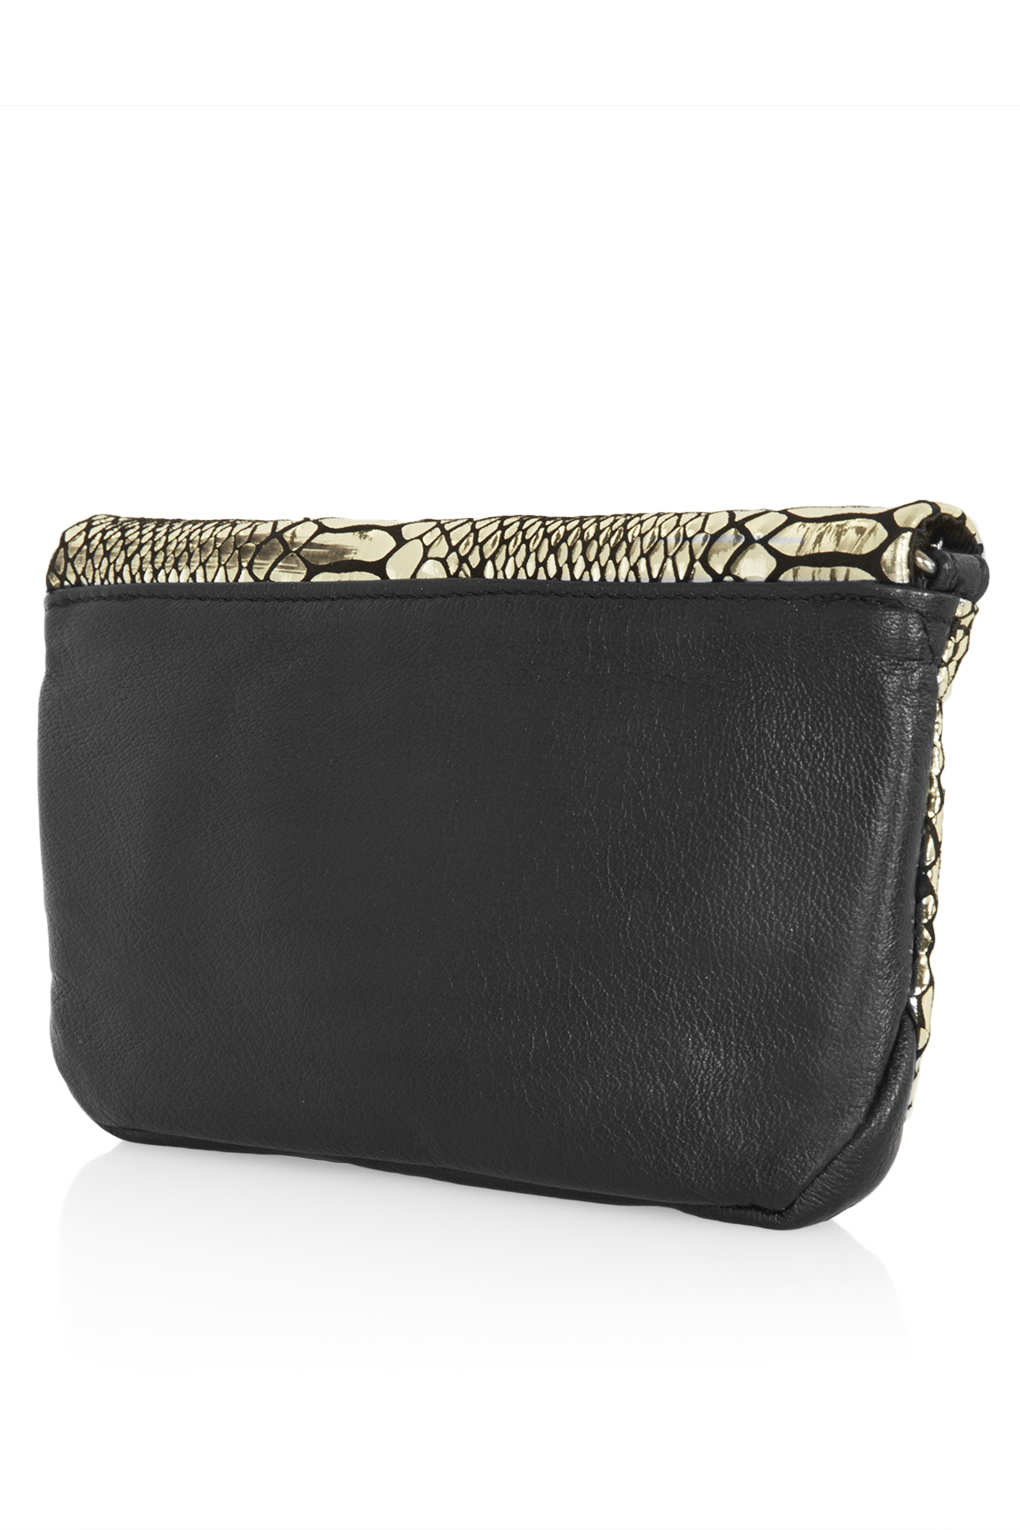 Lyst Topshop Chain Strap Leather Crossbody In Metallic